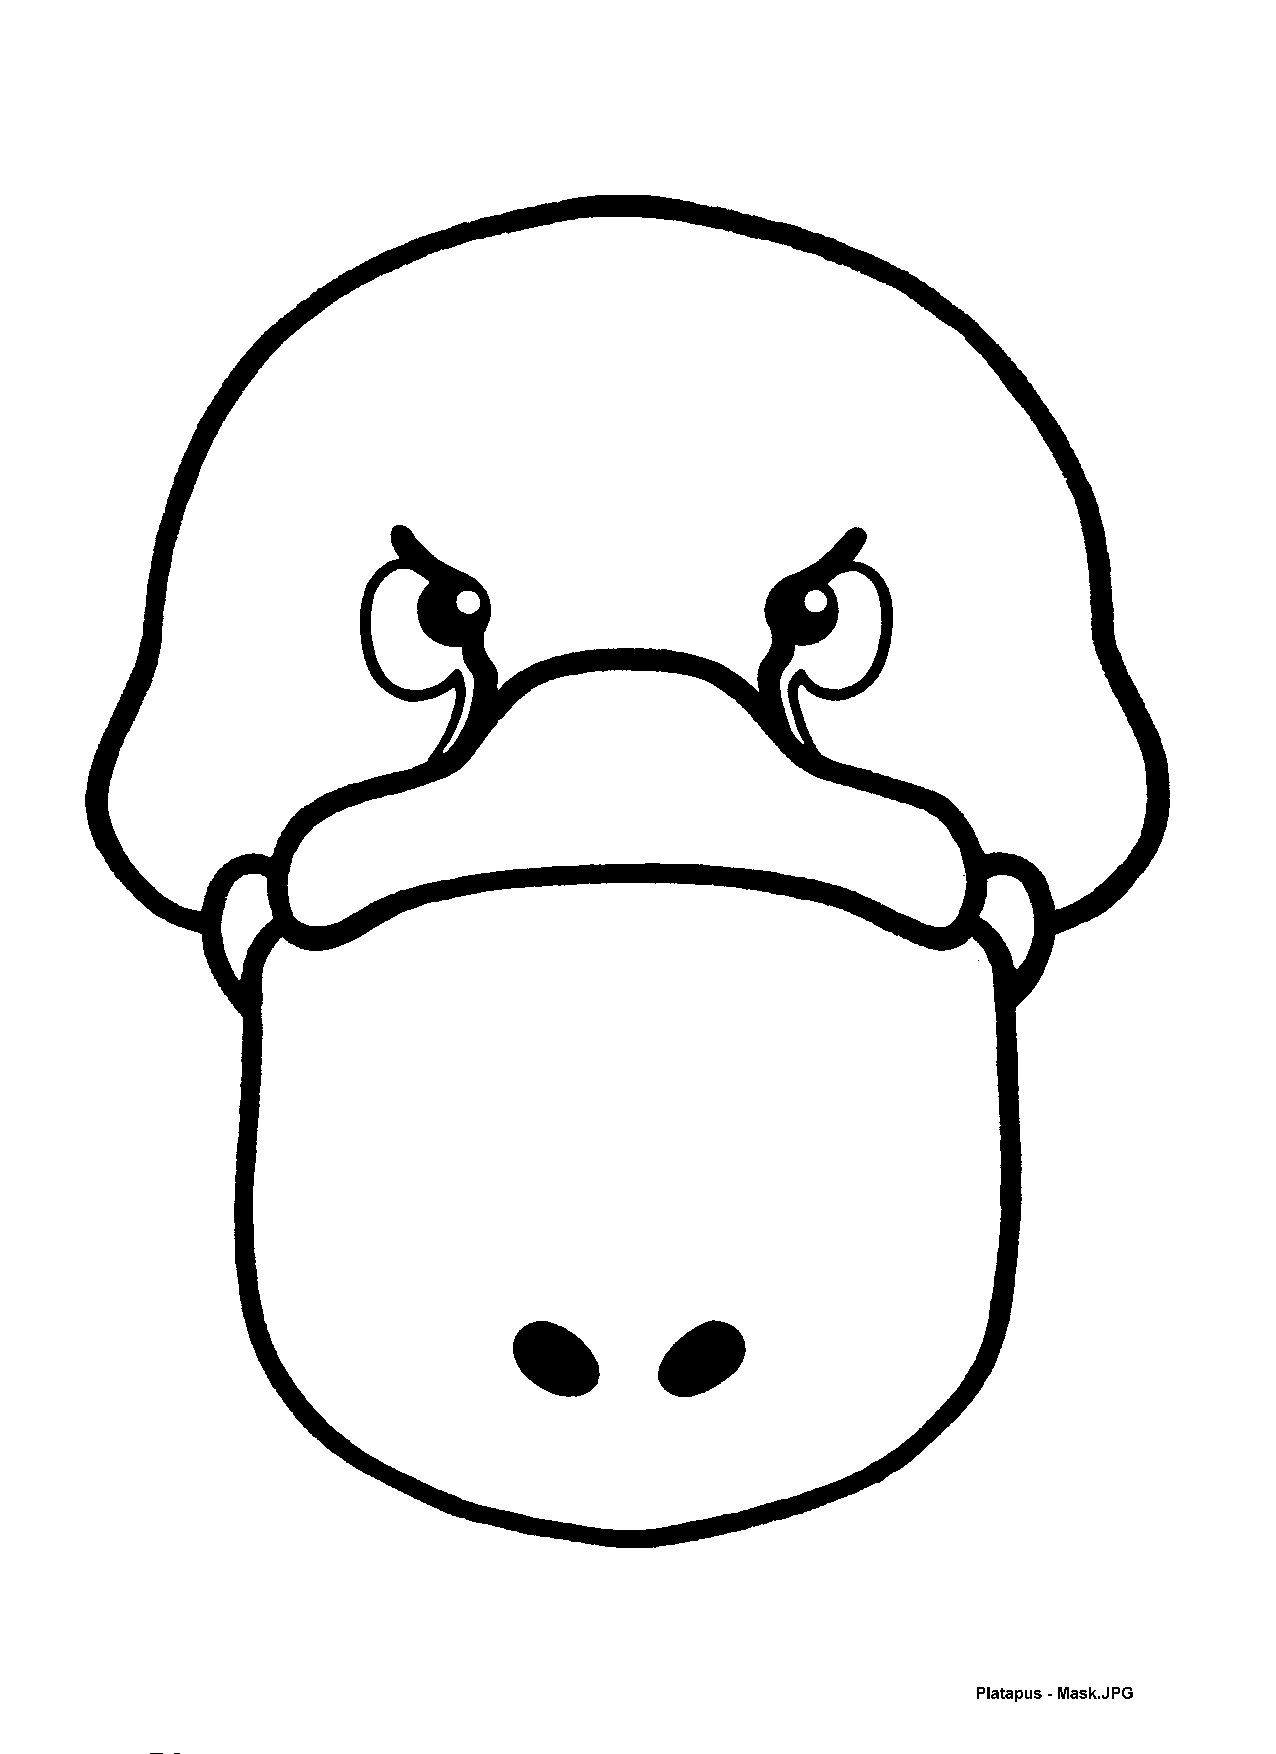 Mask templates for Australian (& other) animals